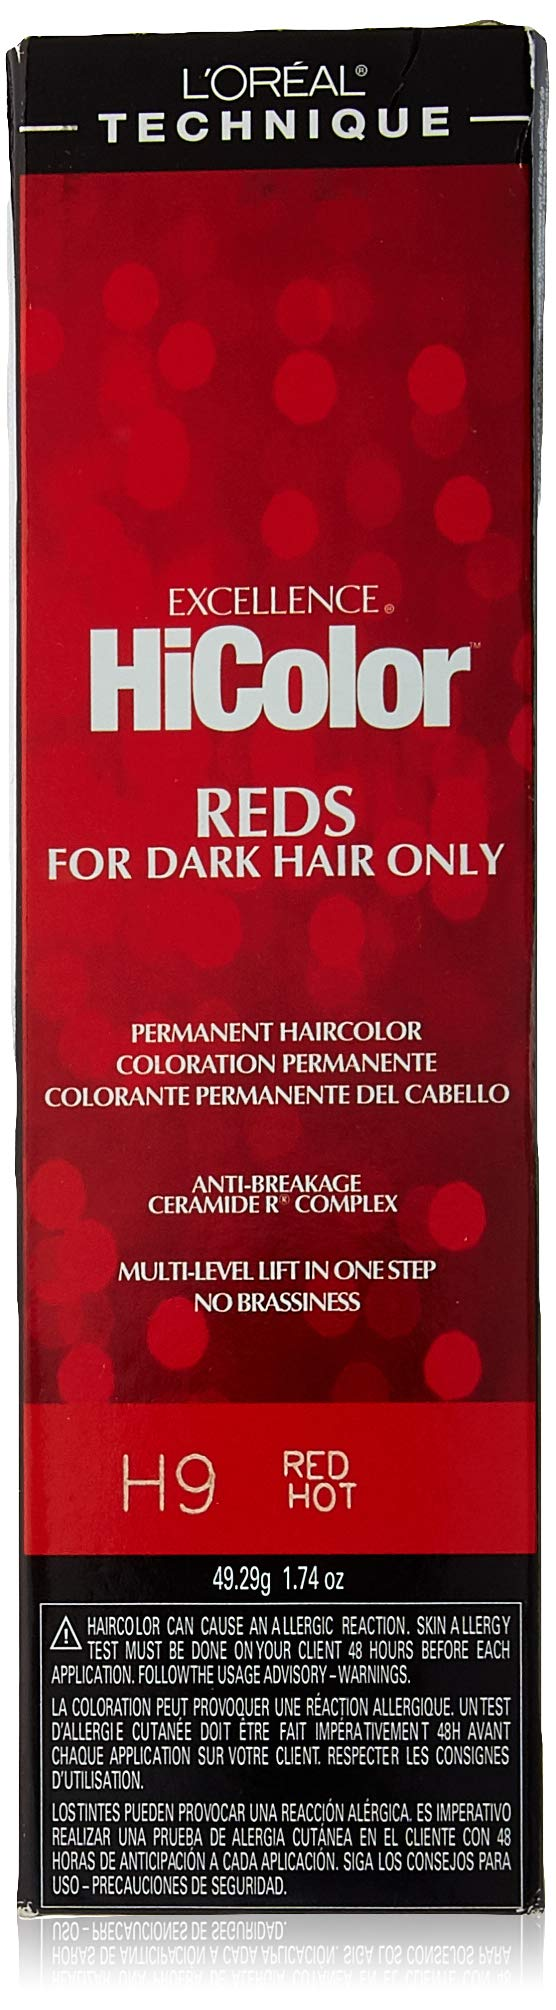 Loreal Excellence Hicolor H09 Tube Red Hot 1.74 Ounce (51ml)